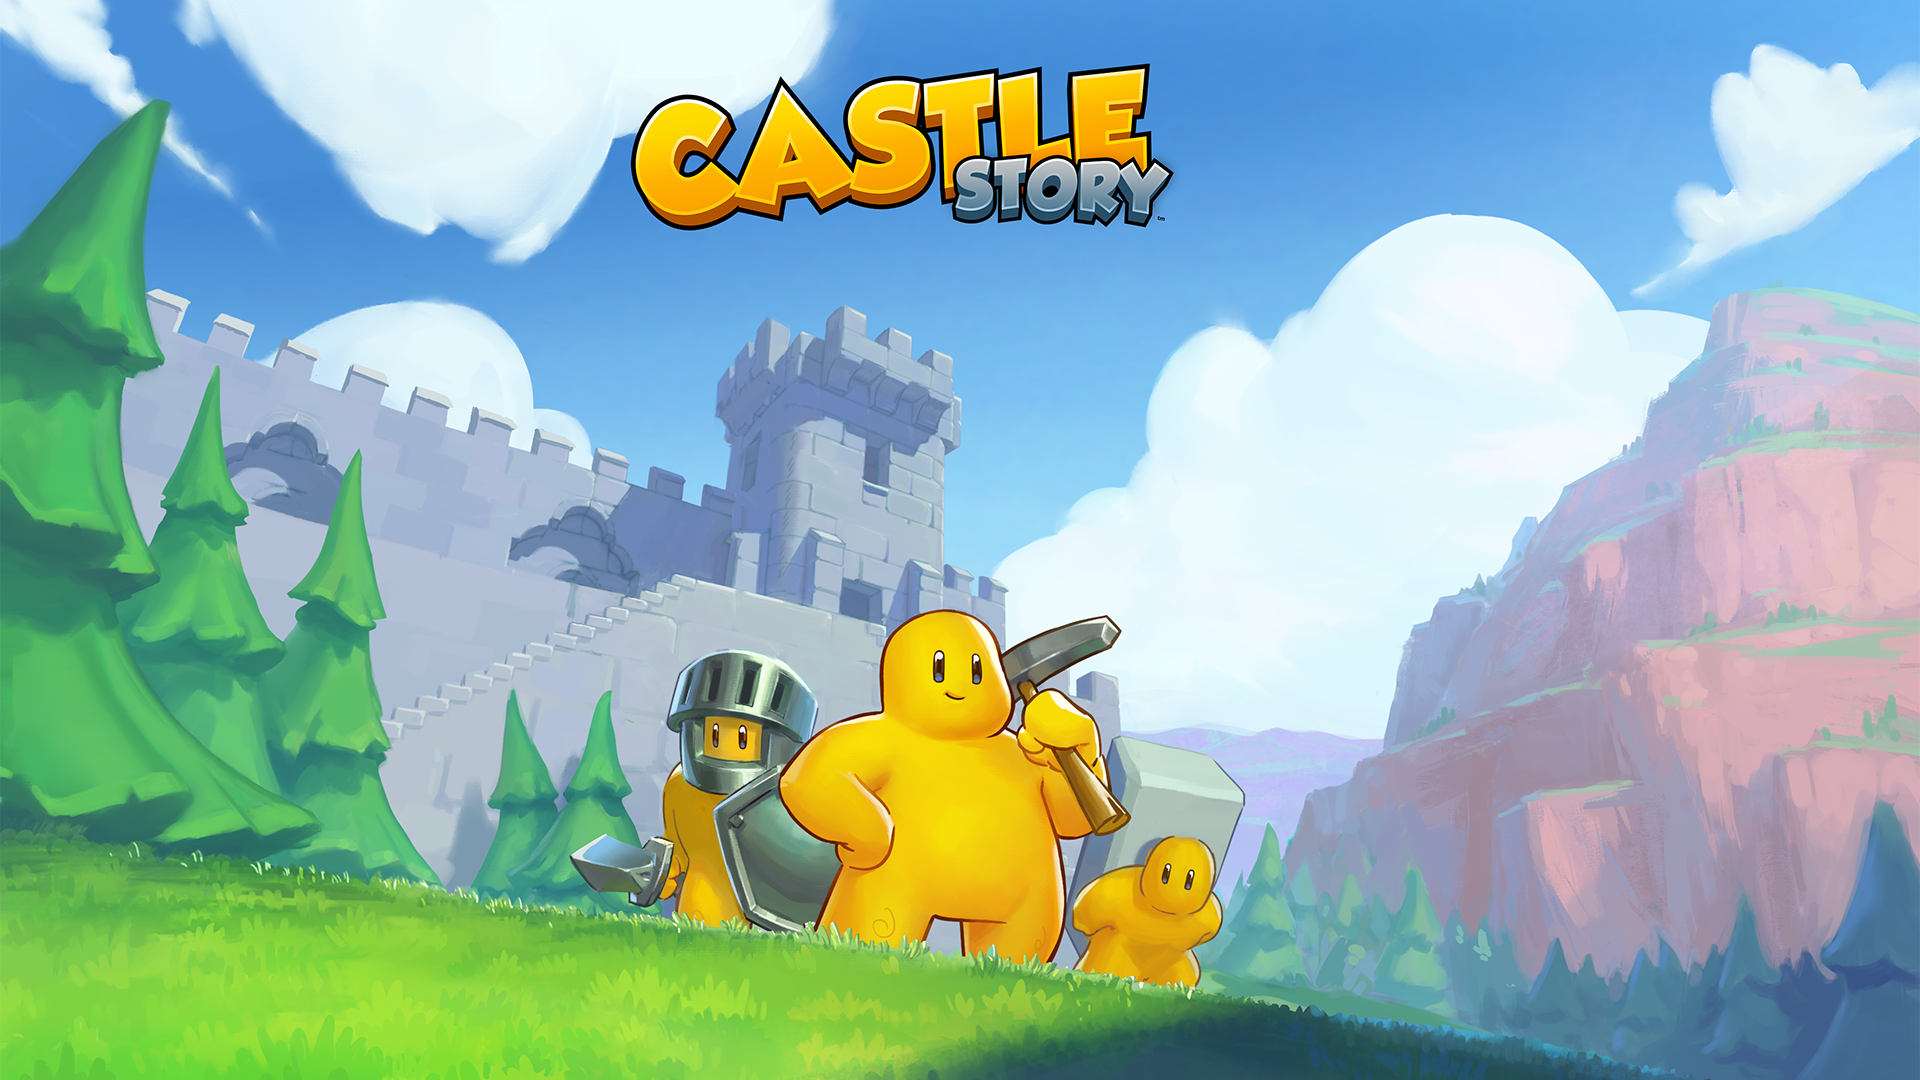 Castle Story Marketing Art